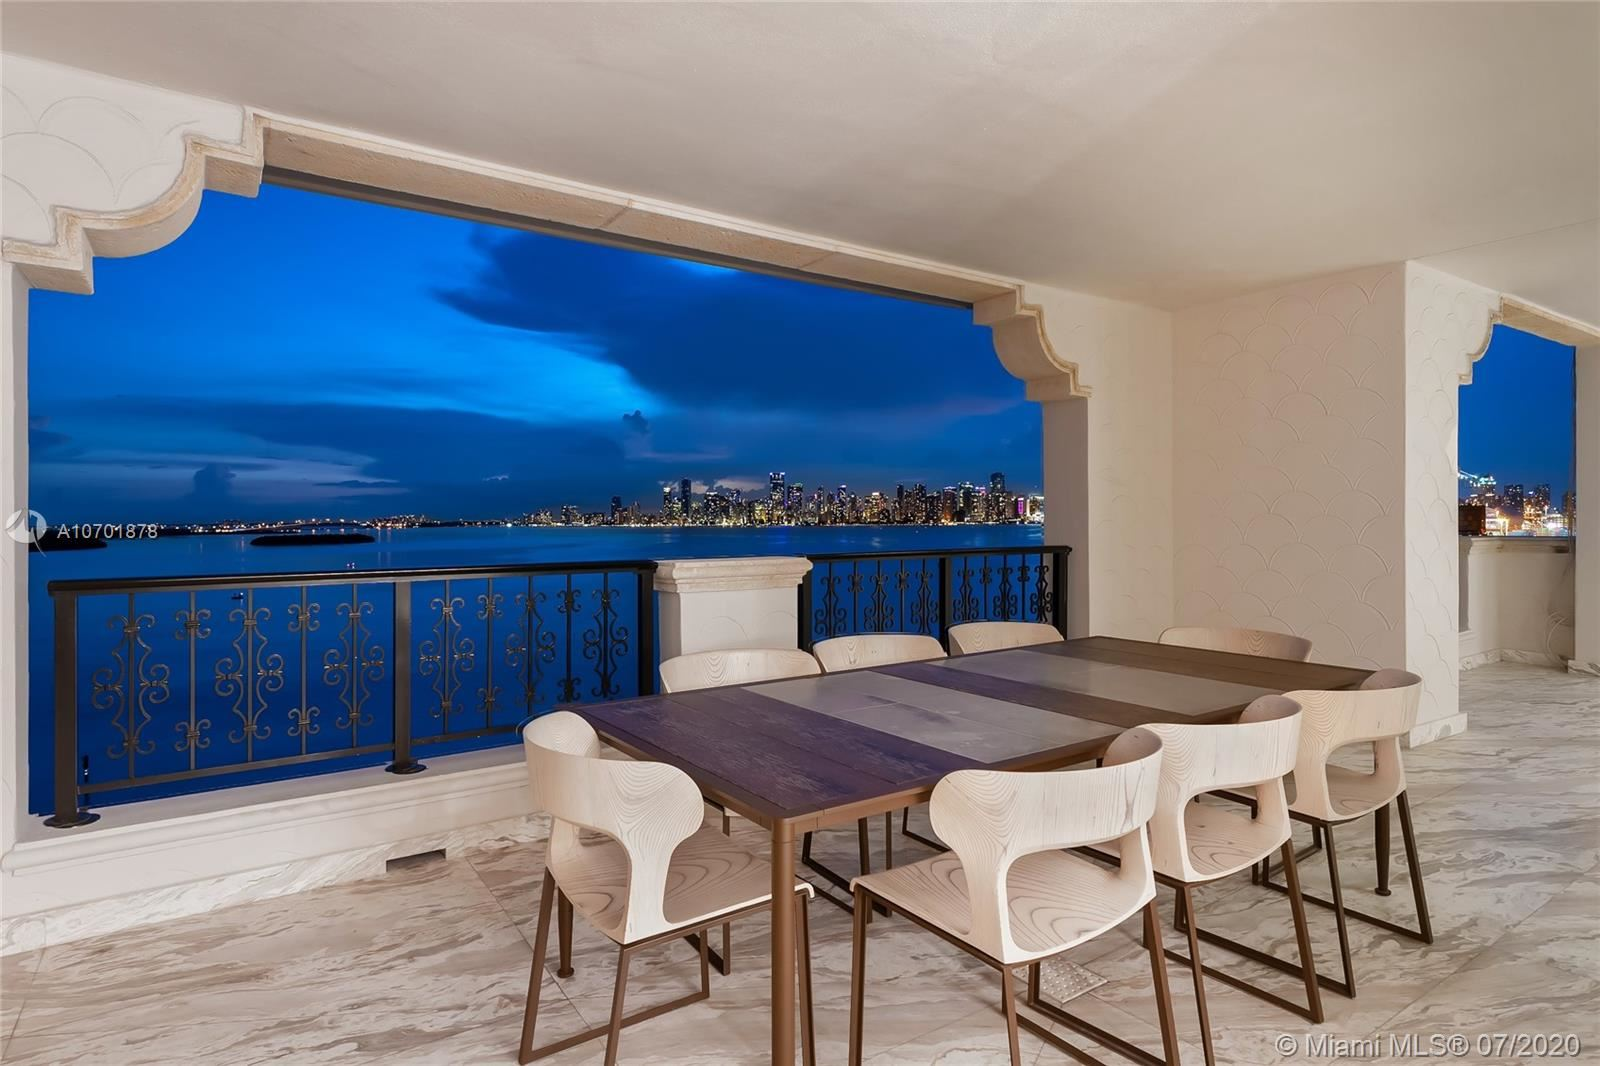 Photo 8 of Listing MLS a10701878 in 5292 Fisher Island Dr #5292 Miami FL 33109